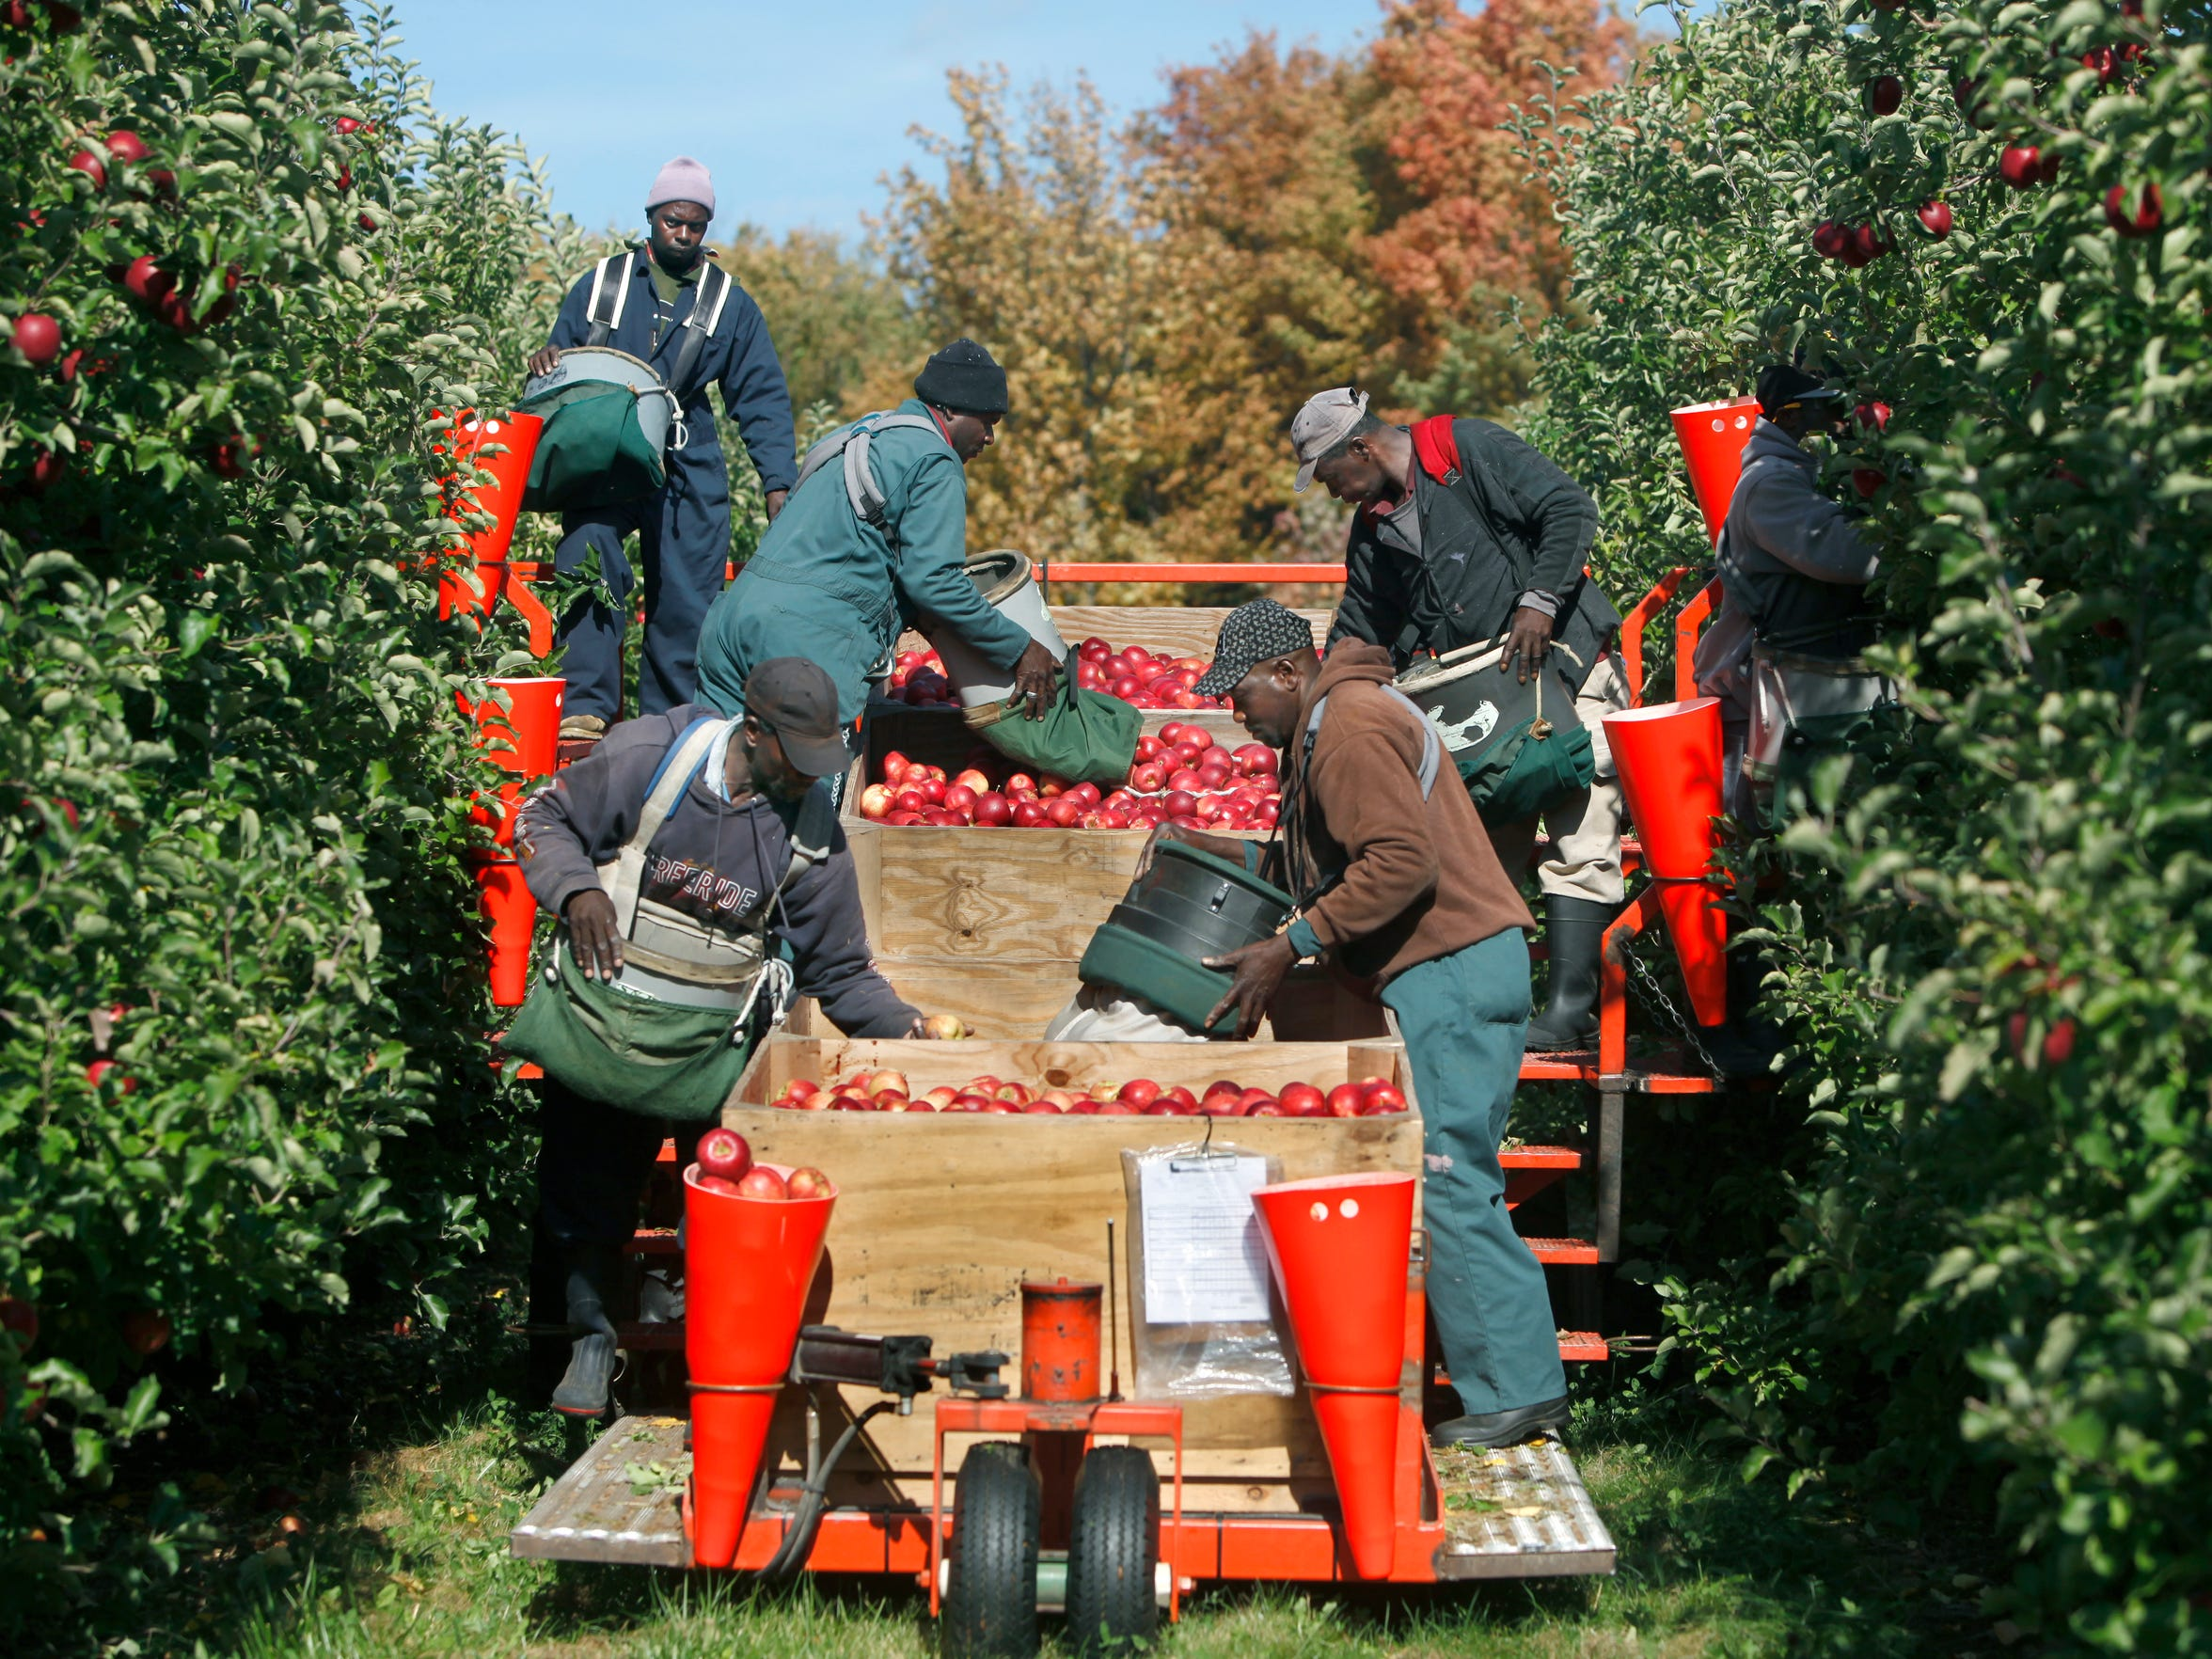 Workers pick Jonagold apples from a platform system